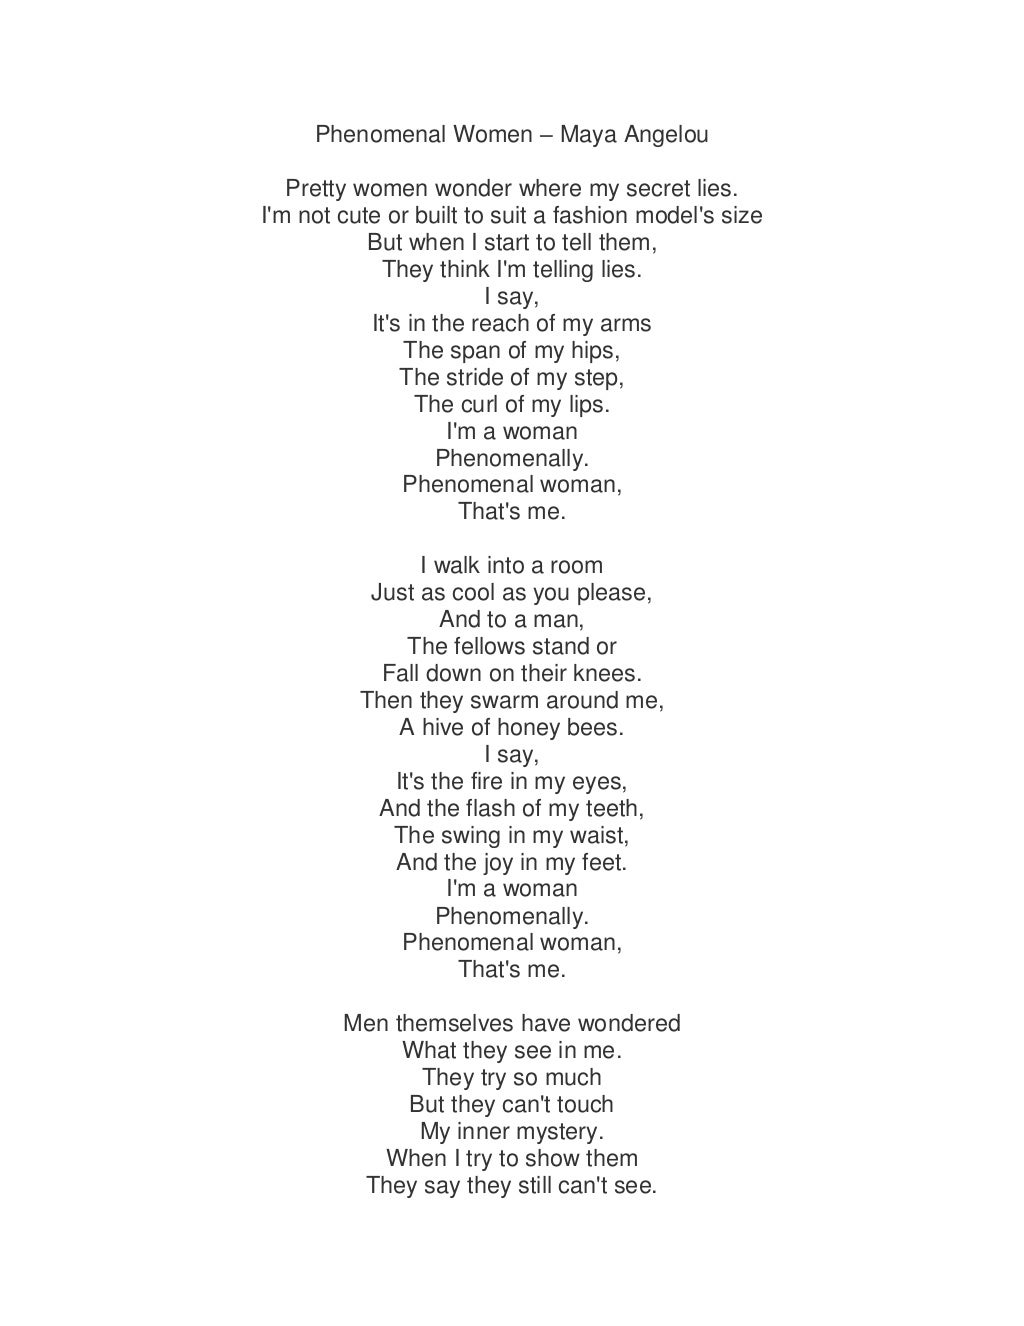 an analysis of the poem phenomenal women by maya angelou